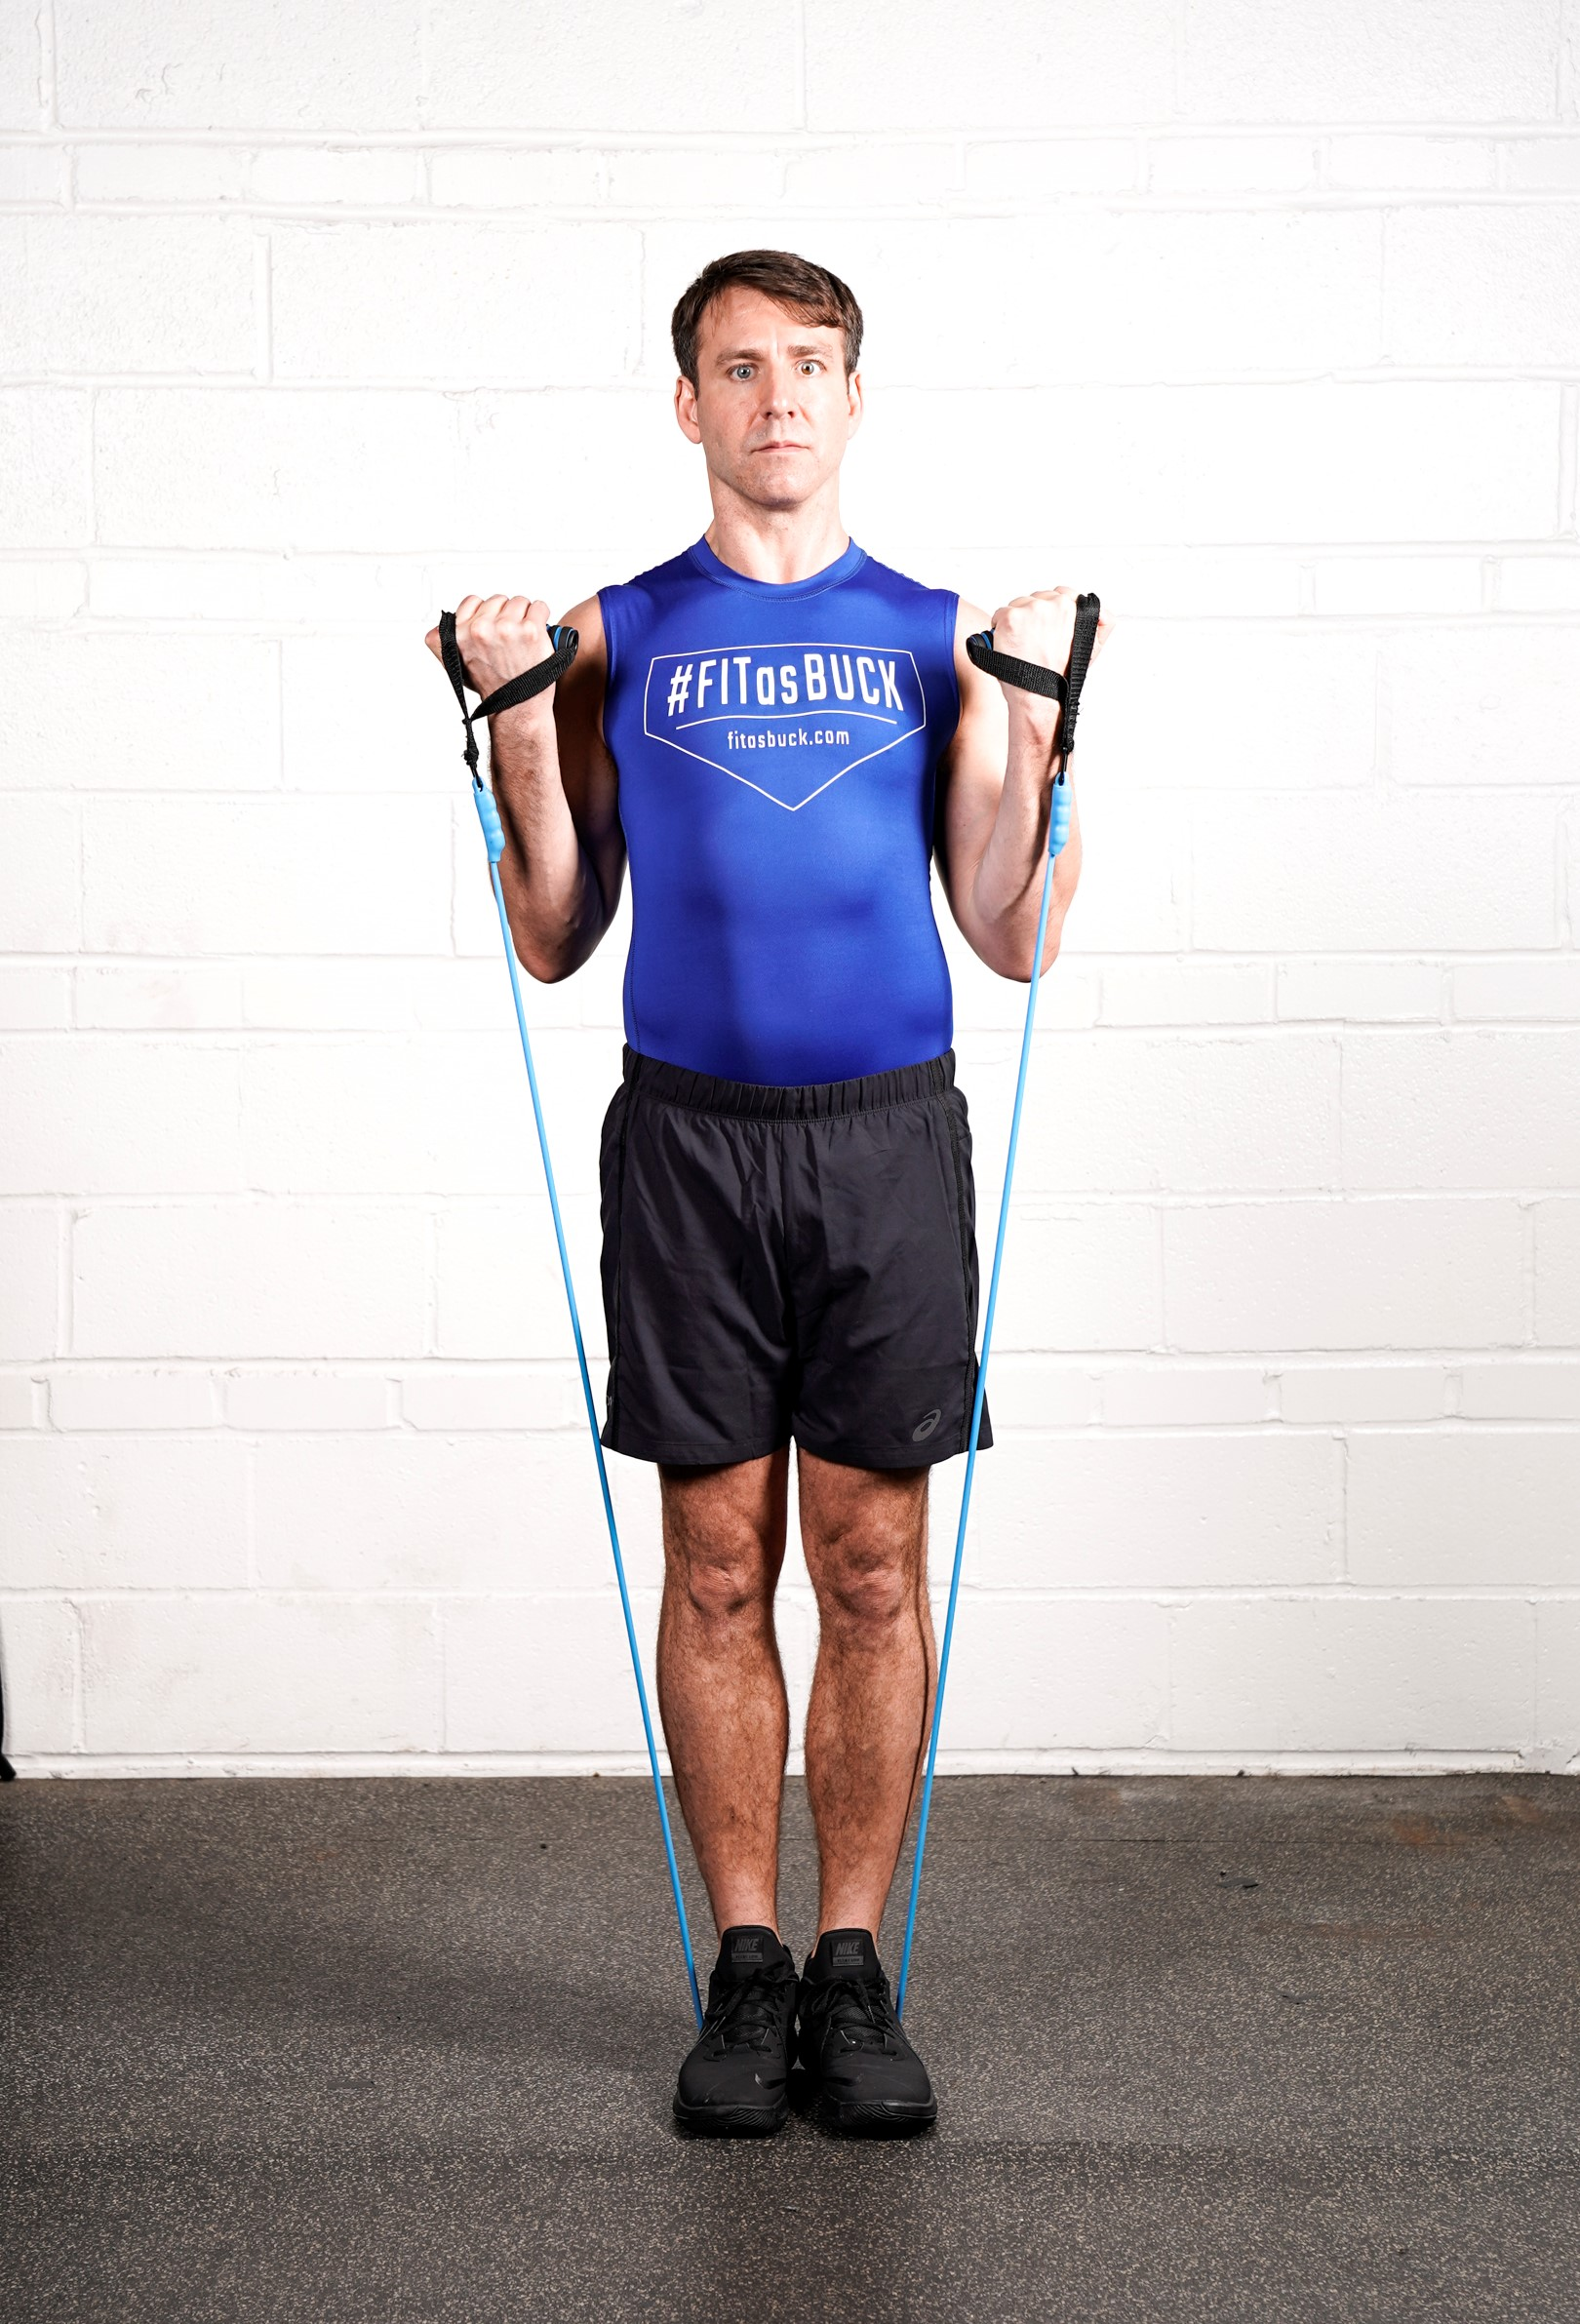 Resistance Band Biceps Curl Hold (All the way) - - DURATION: 30 seconds- SETS: 1